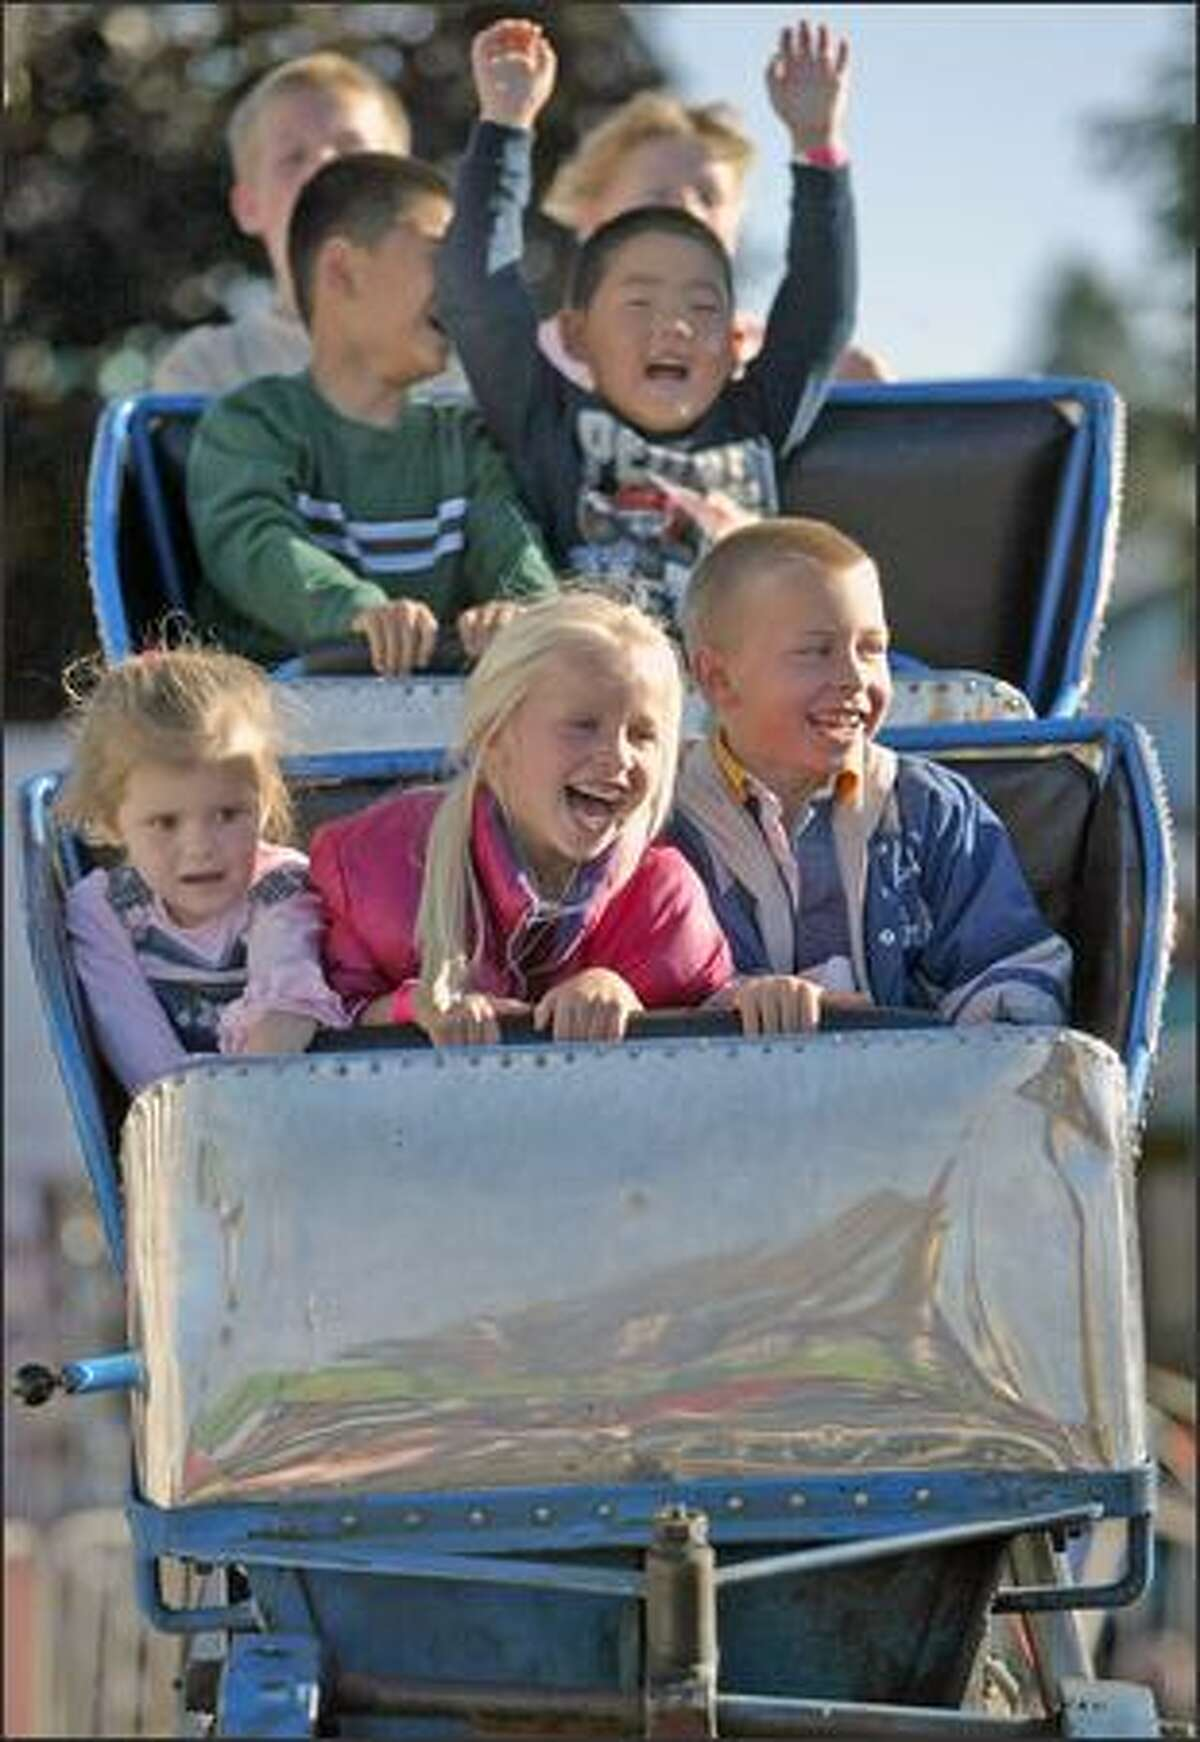 From left, Luccia Buck, 3, Abby Leaman 5, and Noah Leaman, 6, ride the little people's roller coaster at the Puyallup Fair earlier this week.